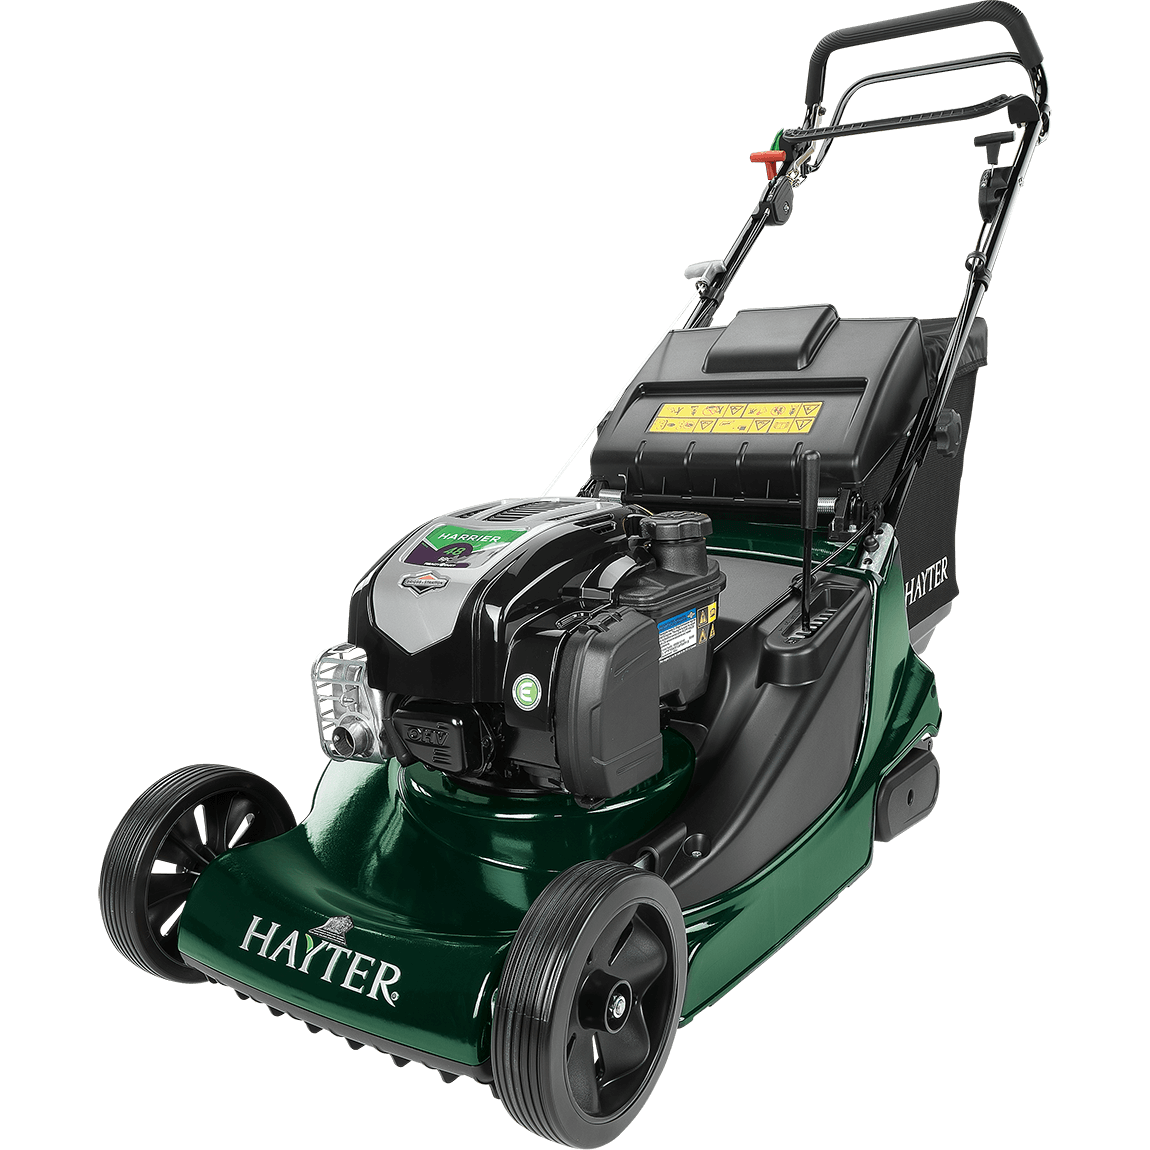 Hayter Harrier 48 Auto-Drive with Variable Speed and Electric Start Lawnmower (Code476A)